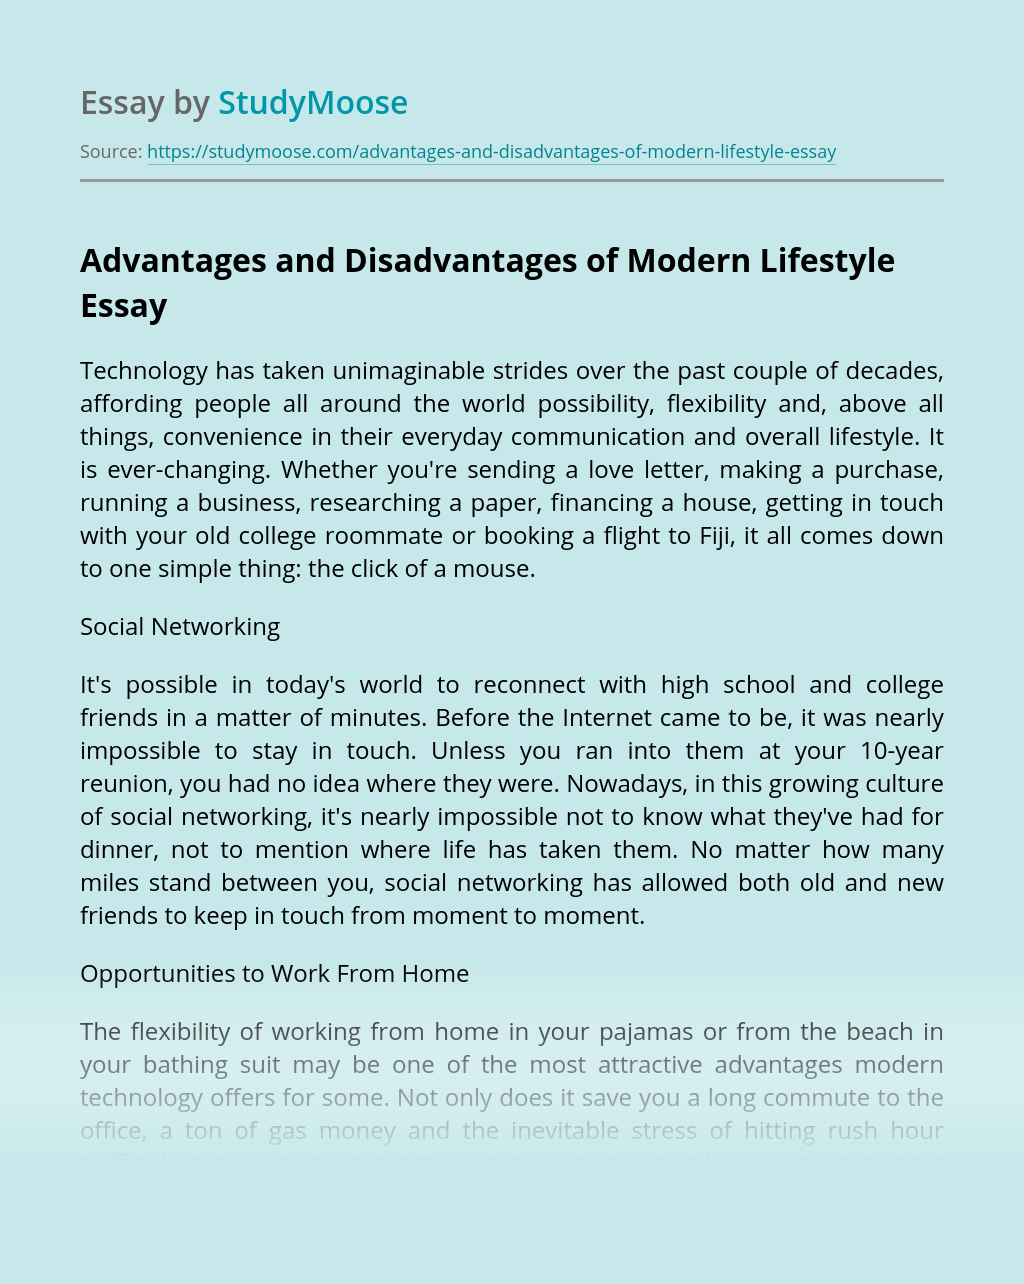 Advantages and Disadvantages of Modern Lifestyle